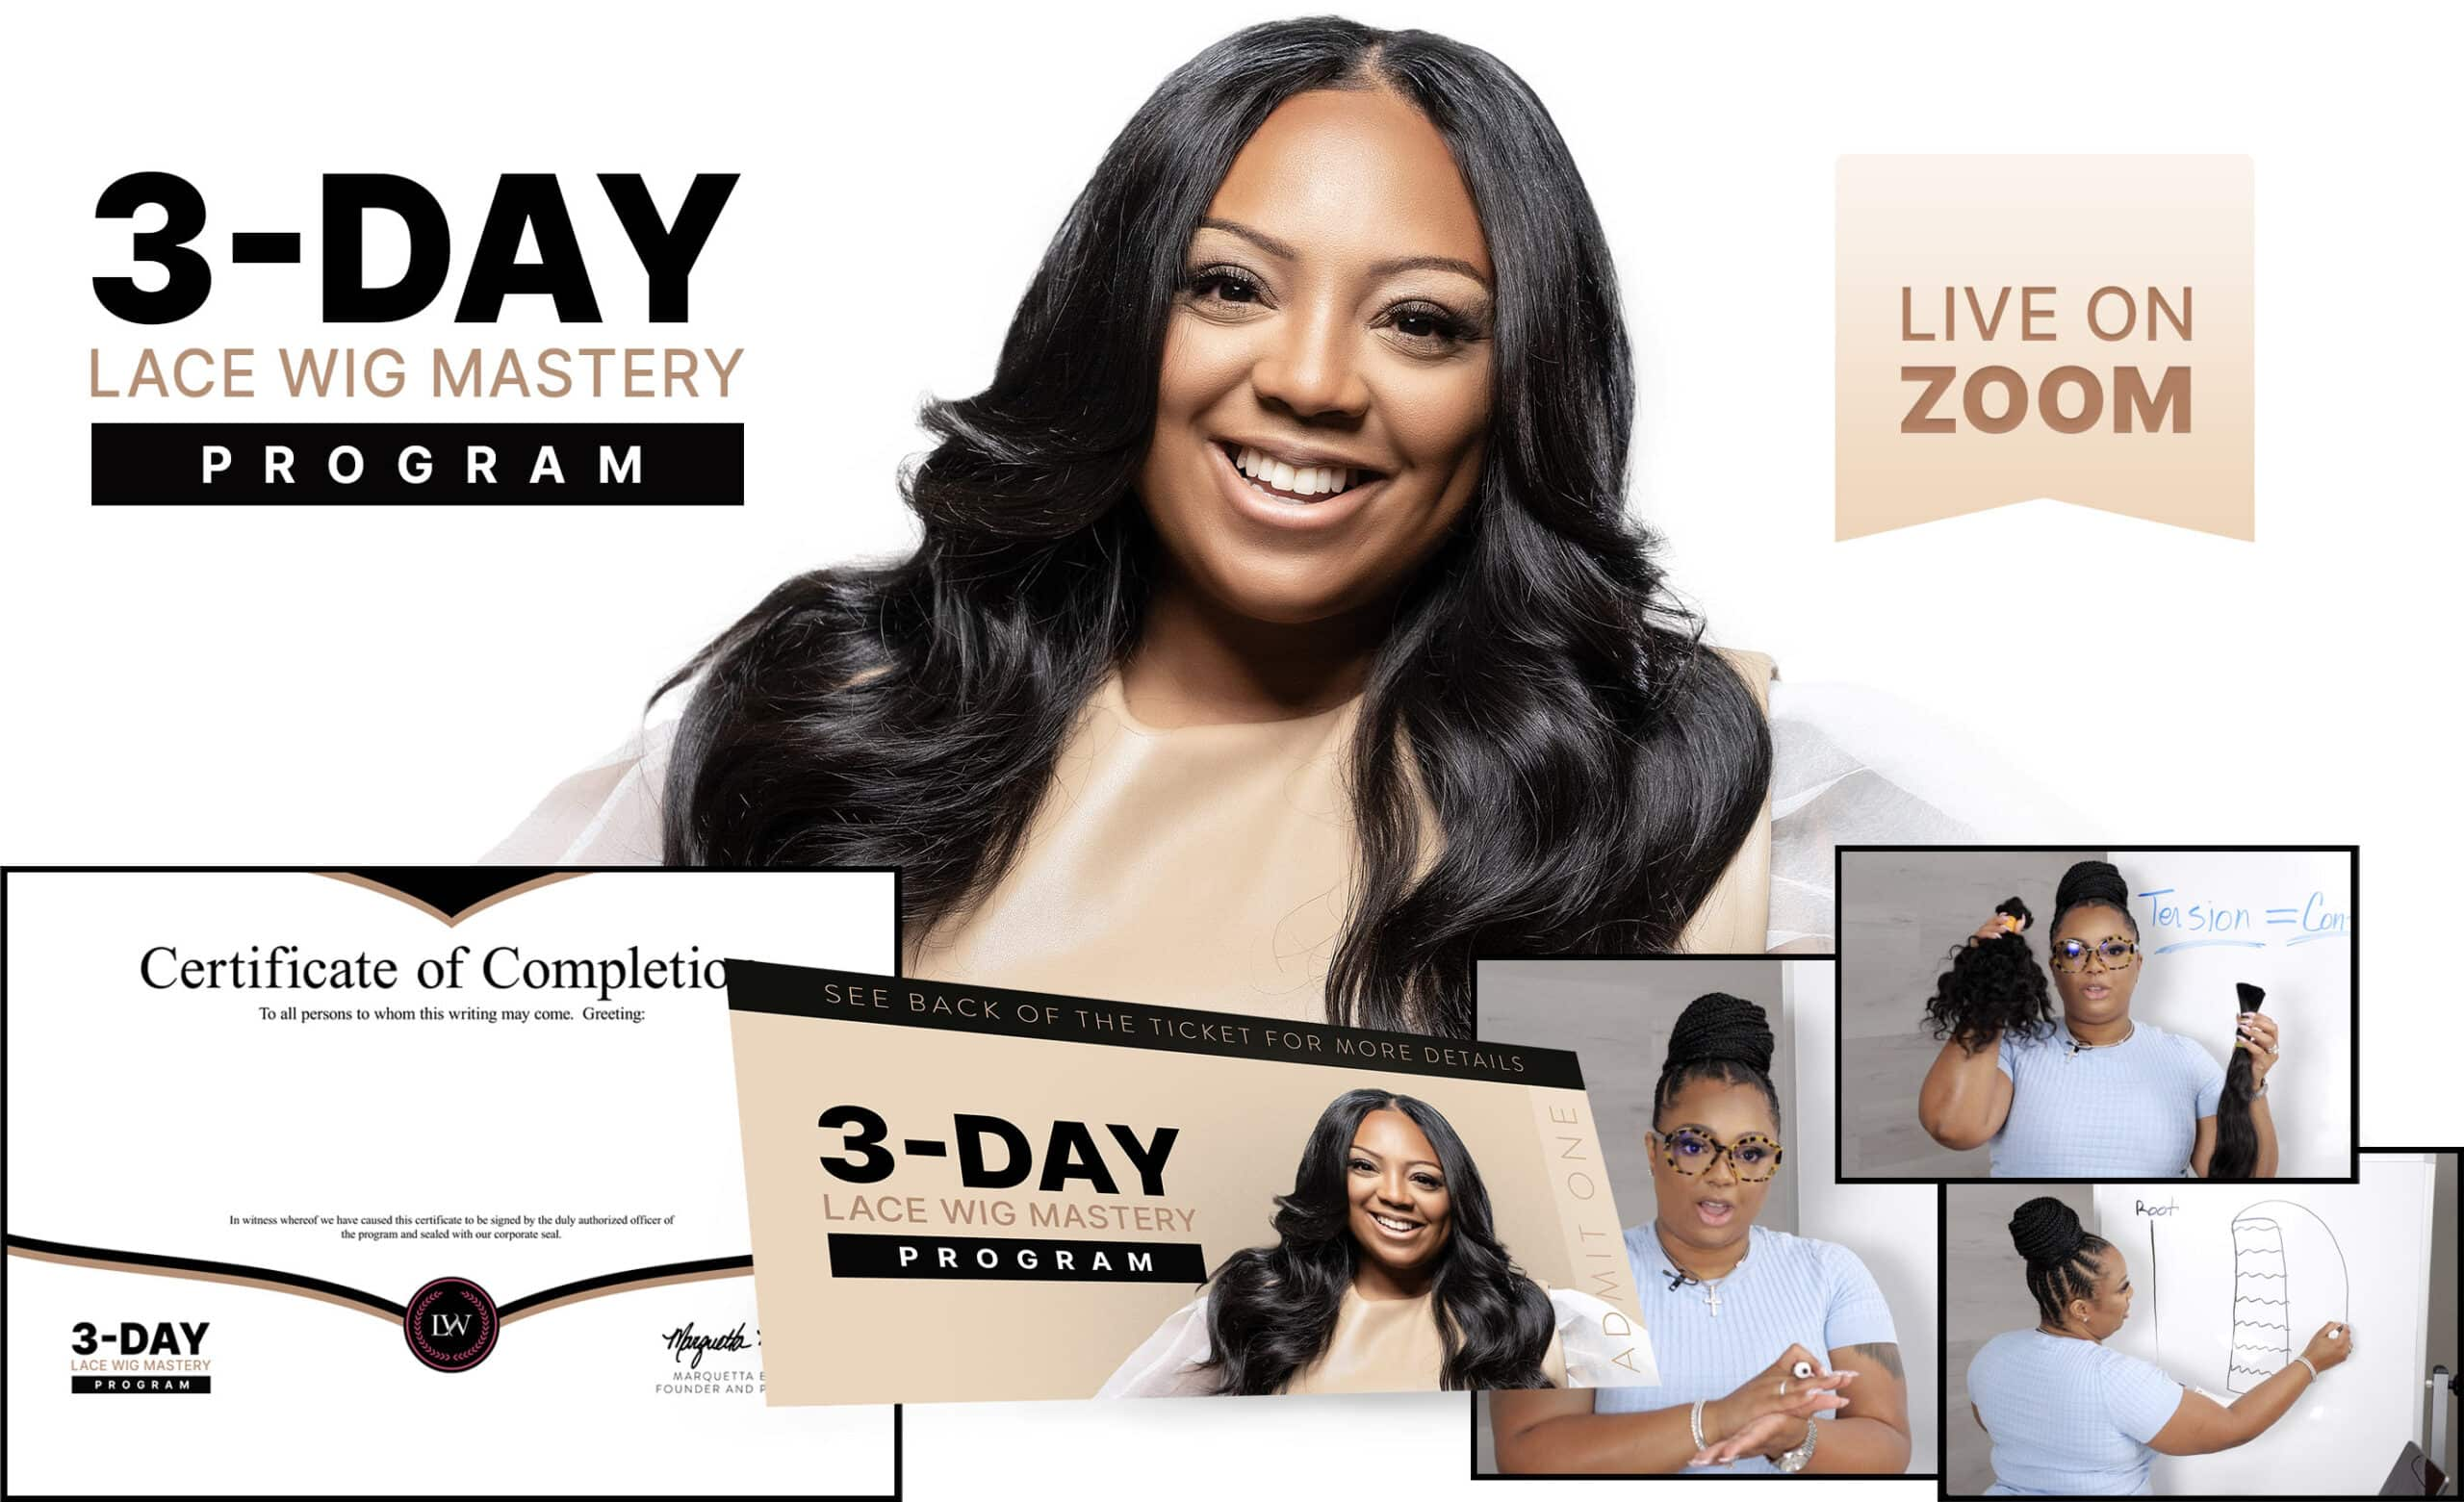 Lace Wig 3-Day Program